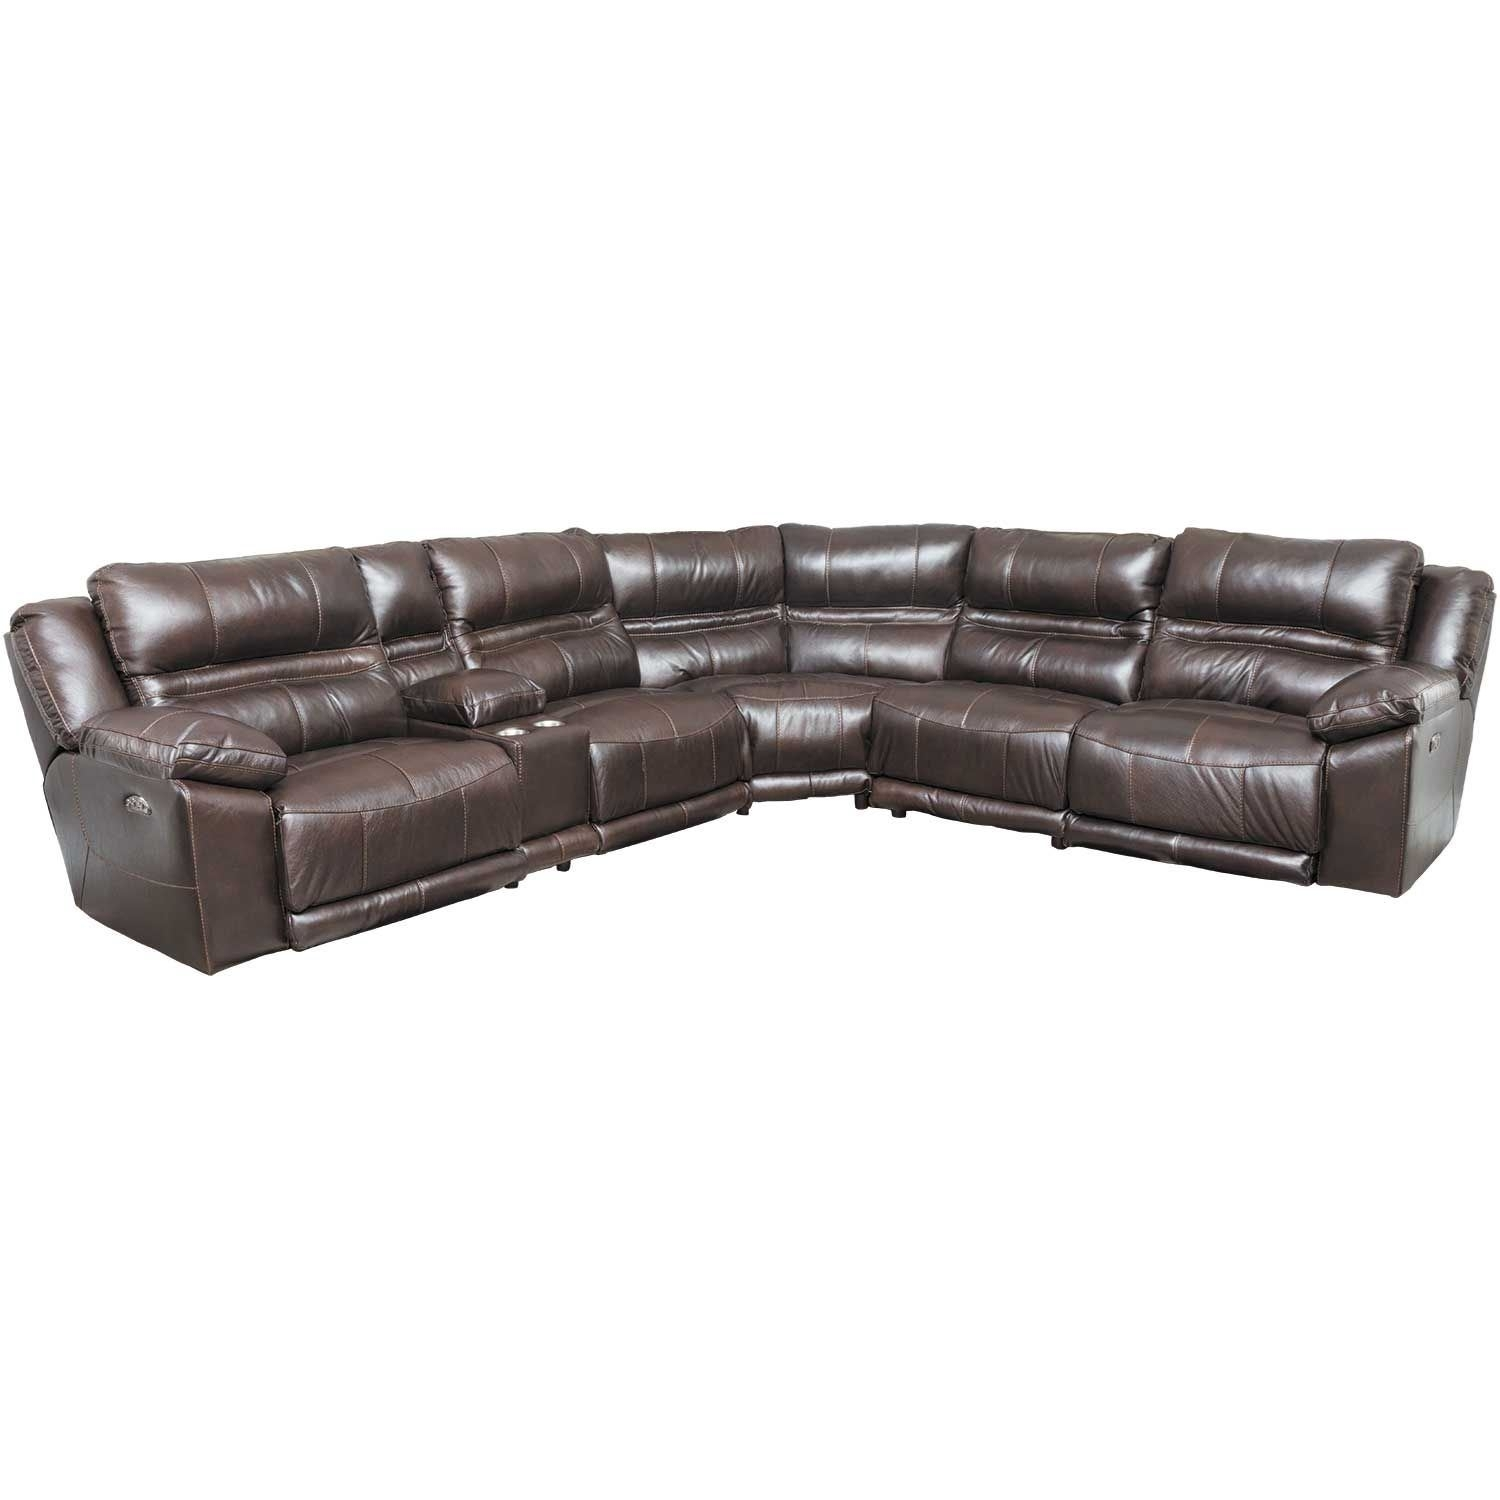 Bergamo 6 Piece Power Reclining Sectional W/ Adjustable Headrest throughout Jackson 6 Piece Power Reclining Sectionals (Image 2 of 30)